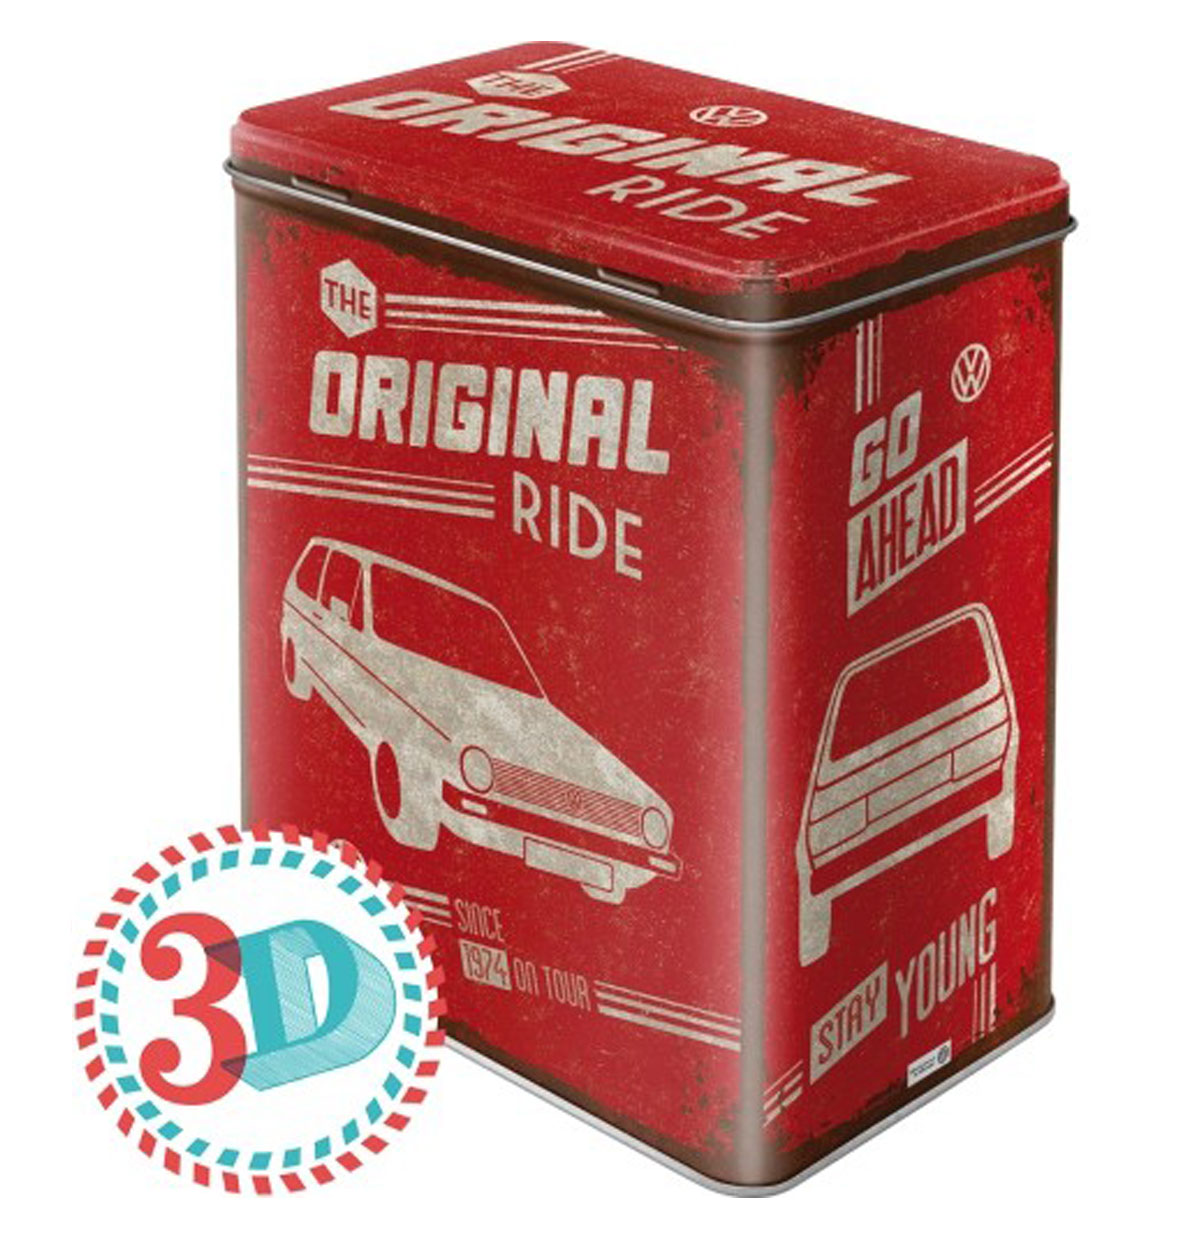 VW Volkswagen Golf The Original Ride Tin Box L